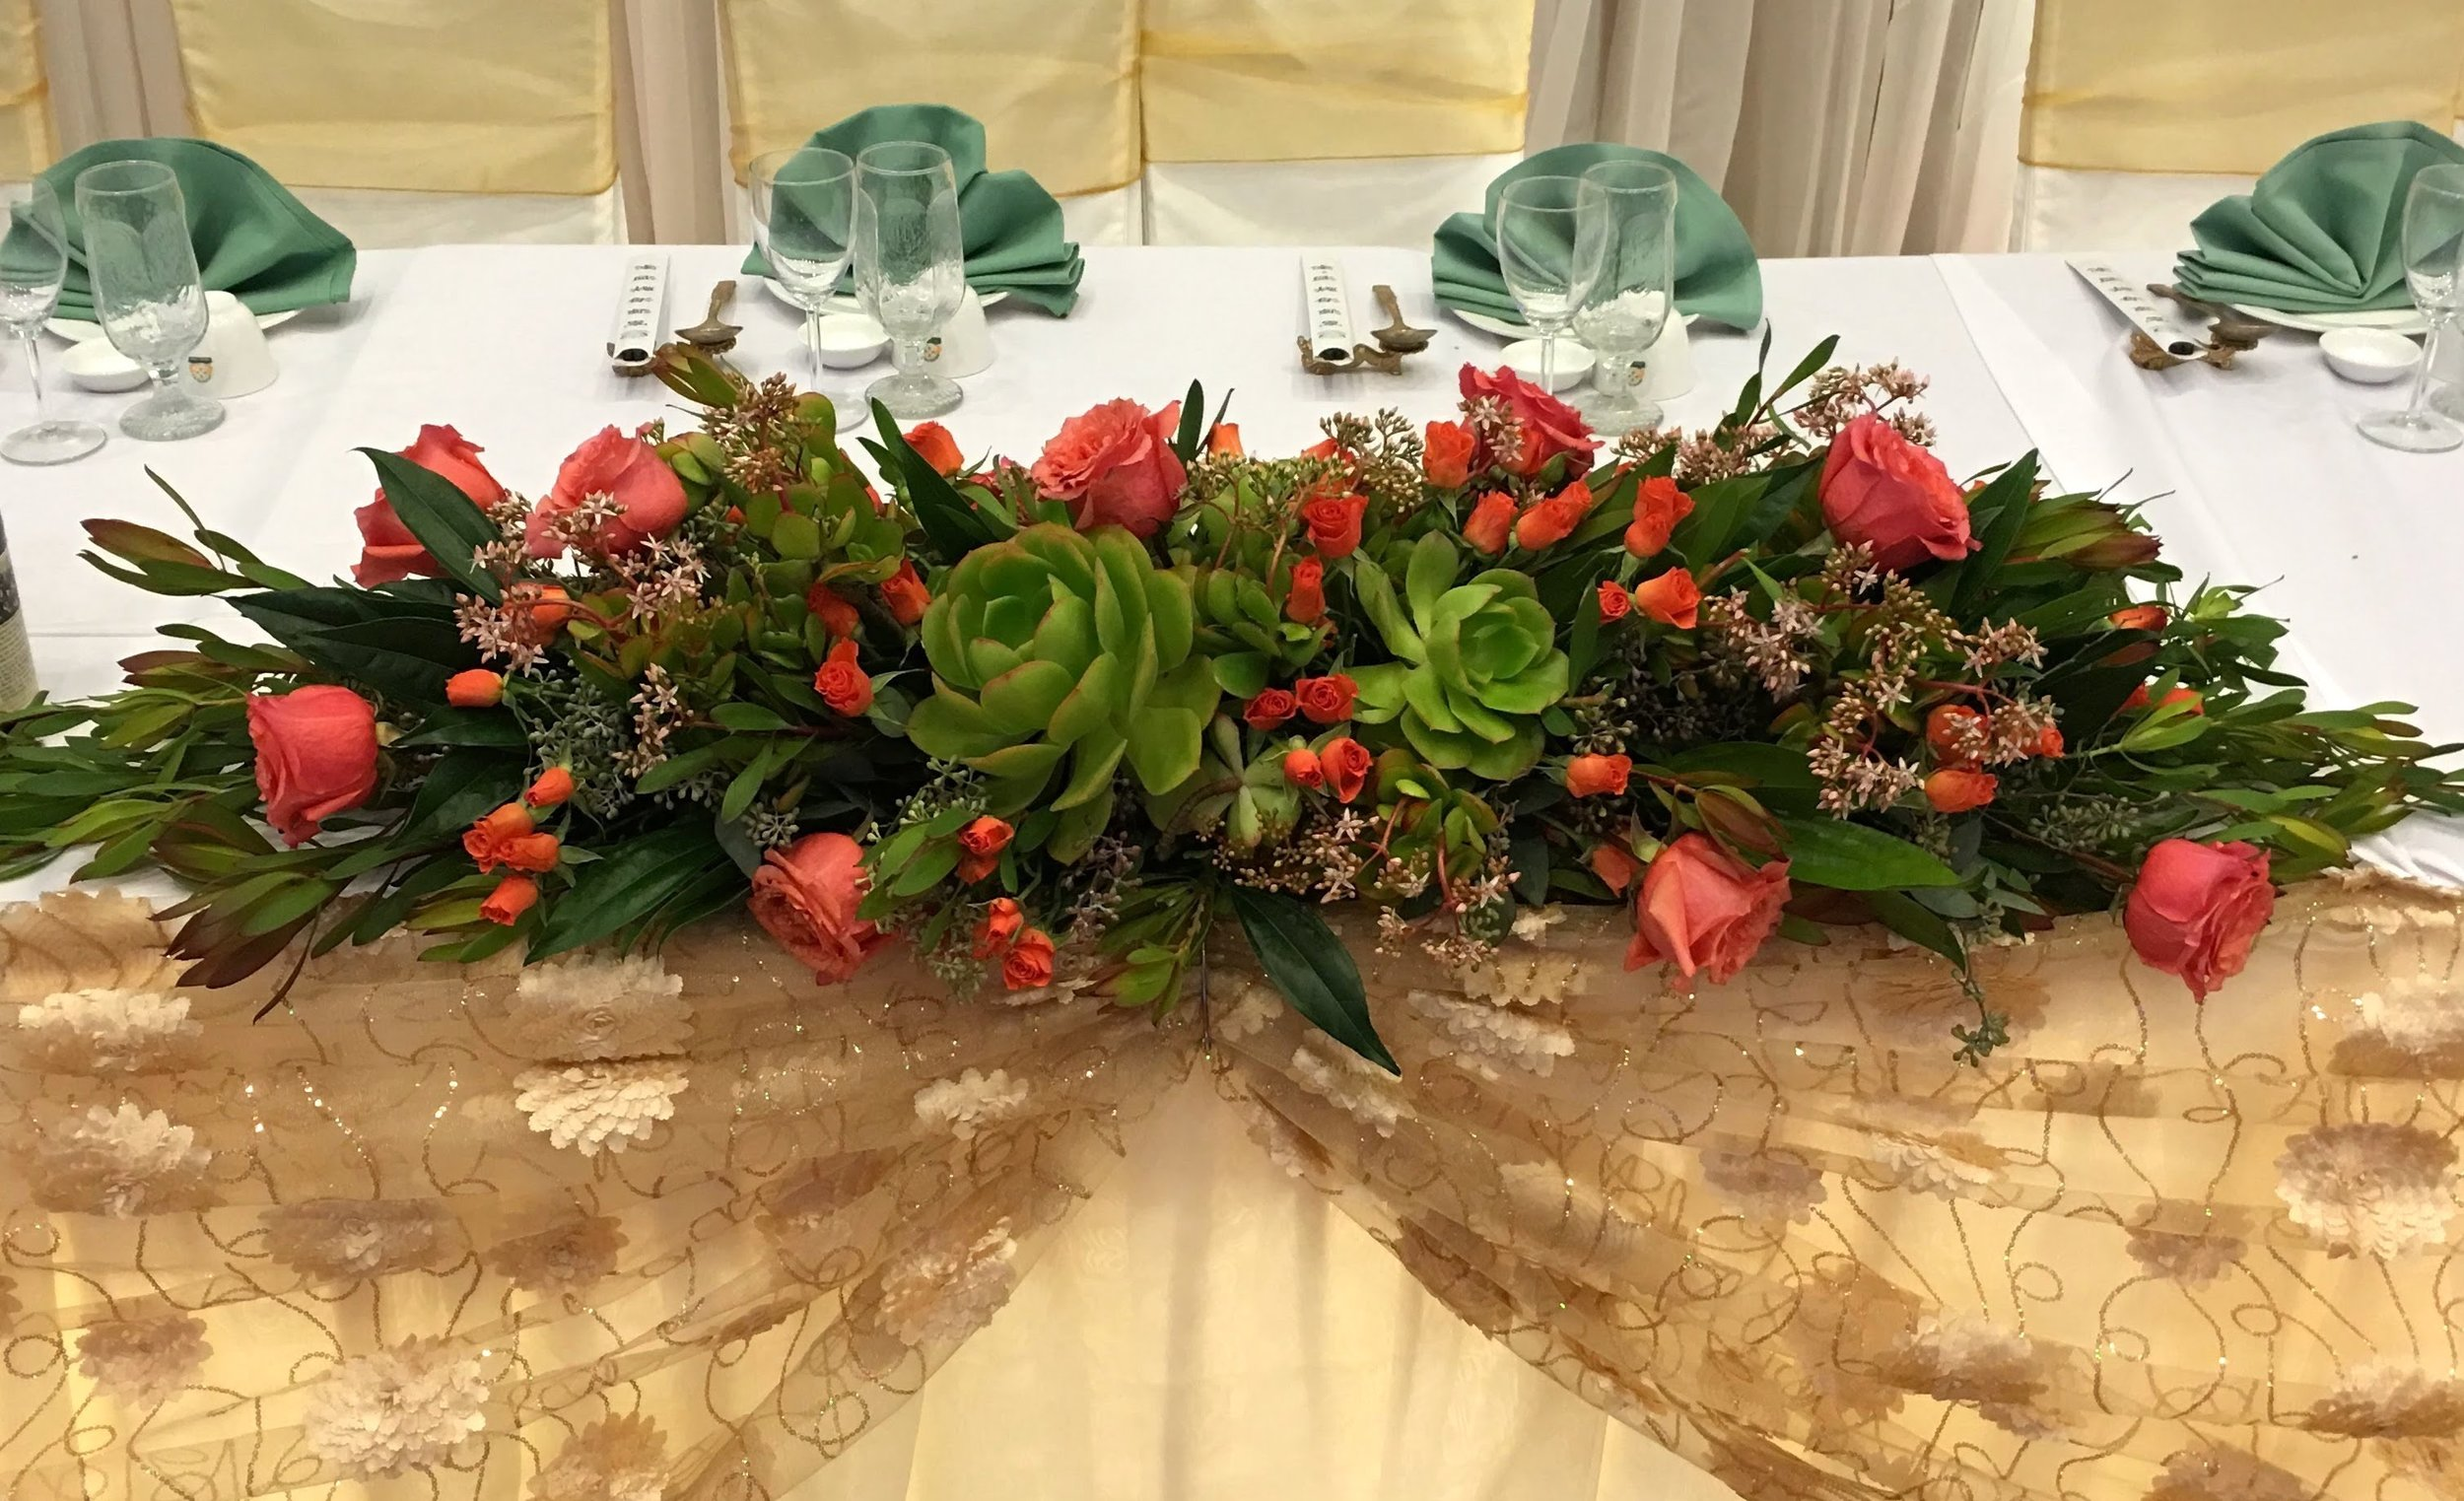 - Succulents are becoming popular in wedding florals, though at times it's difficult to make them stand out because they can oftentimes blend in with the leaves. By adding roses to create a pop of color the succulents stand out more and photograph better.